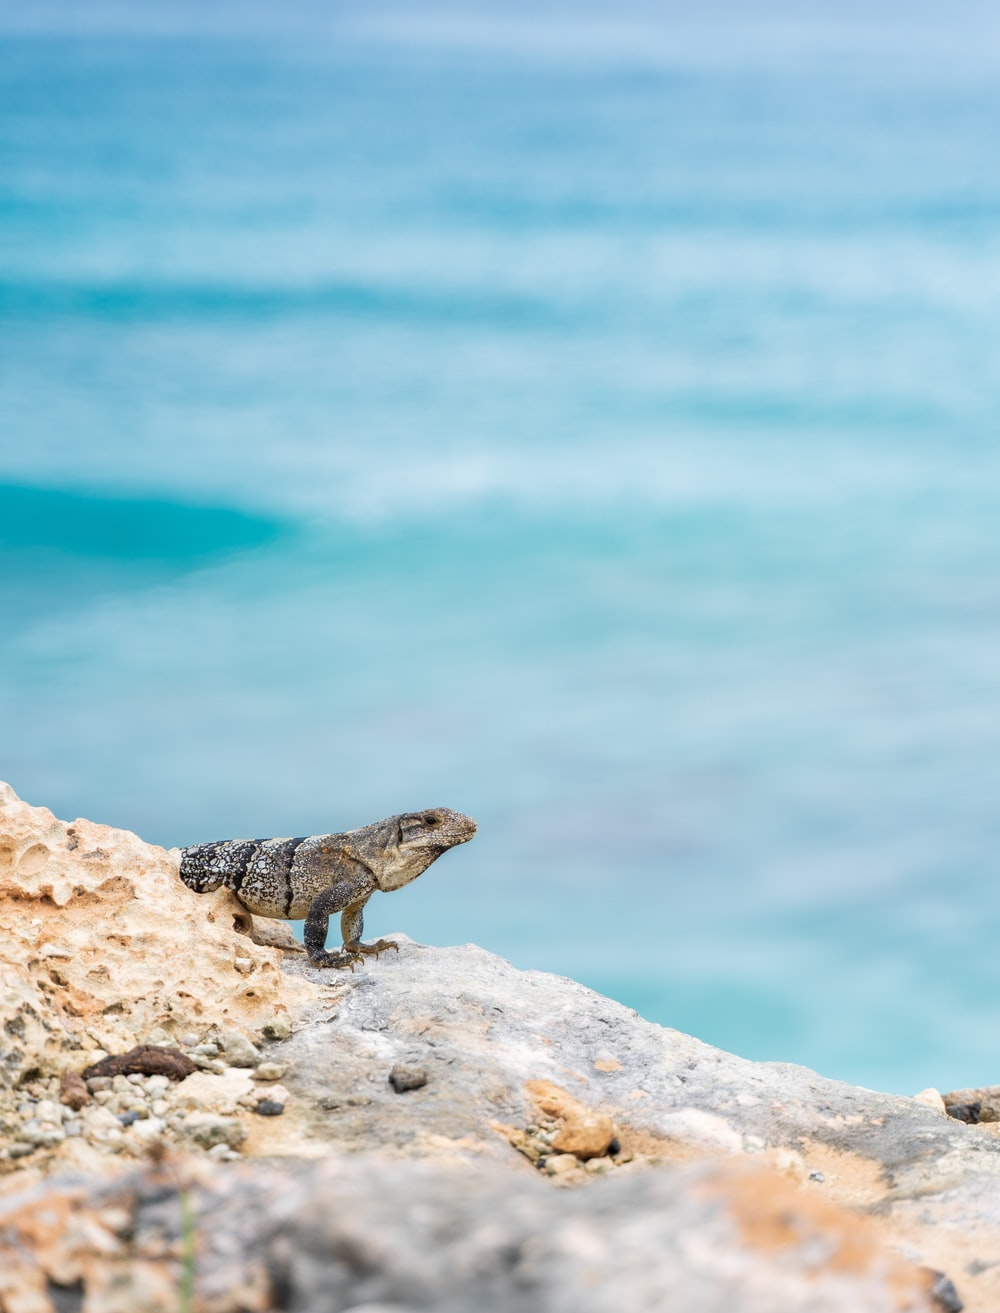 black and white lizard on rock near body of water during daytime